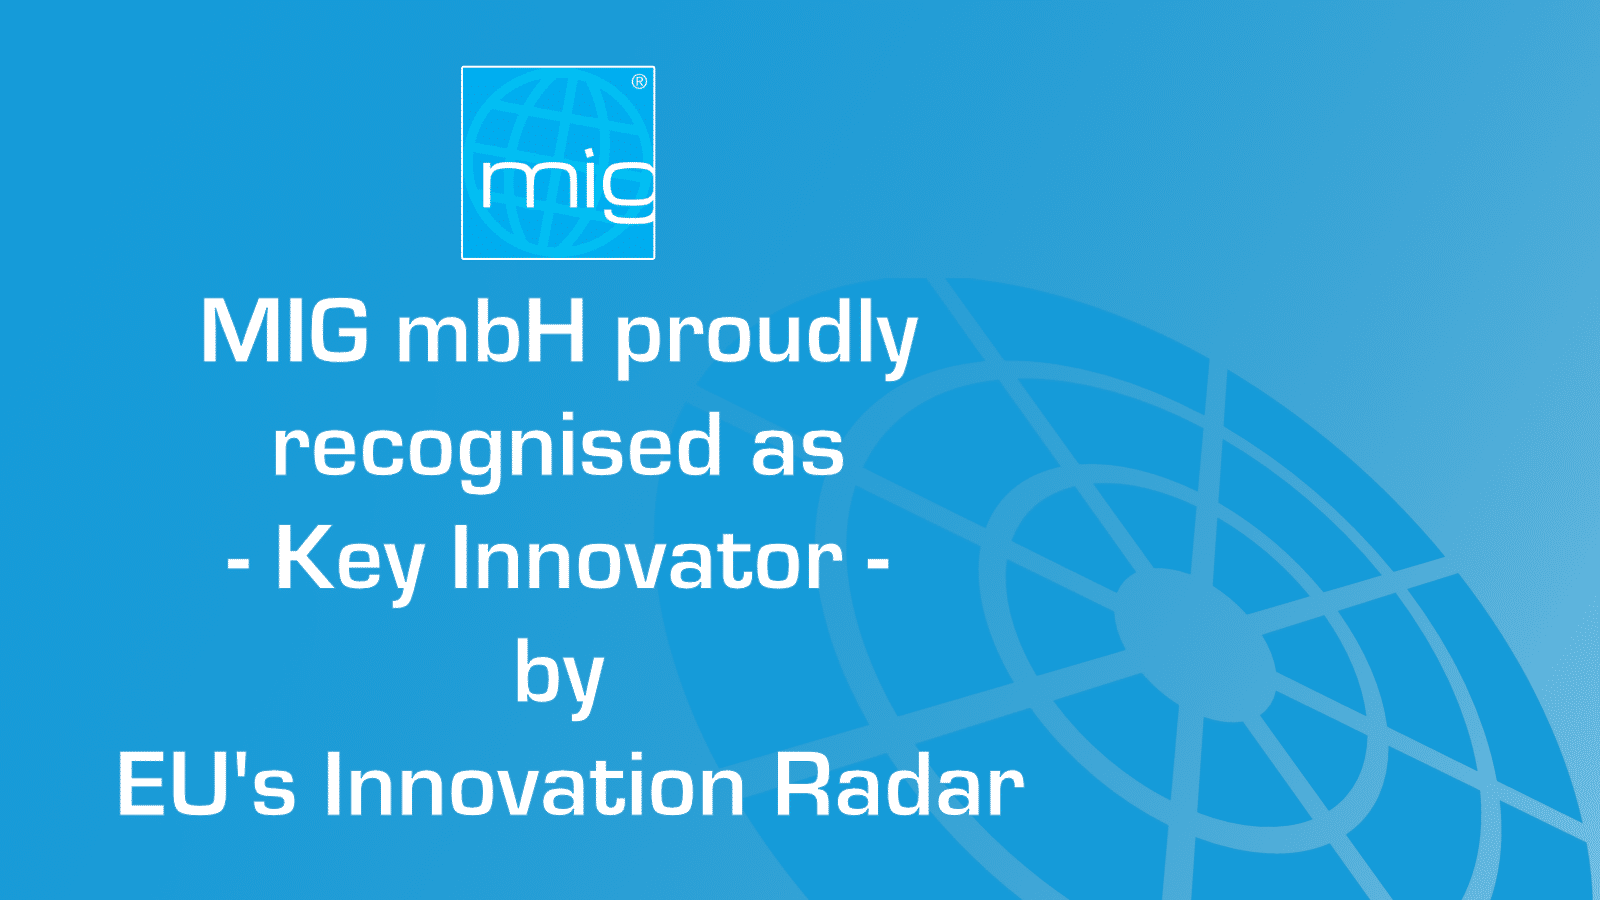 MIGmbH-eu-innovation-radar-en